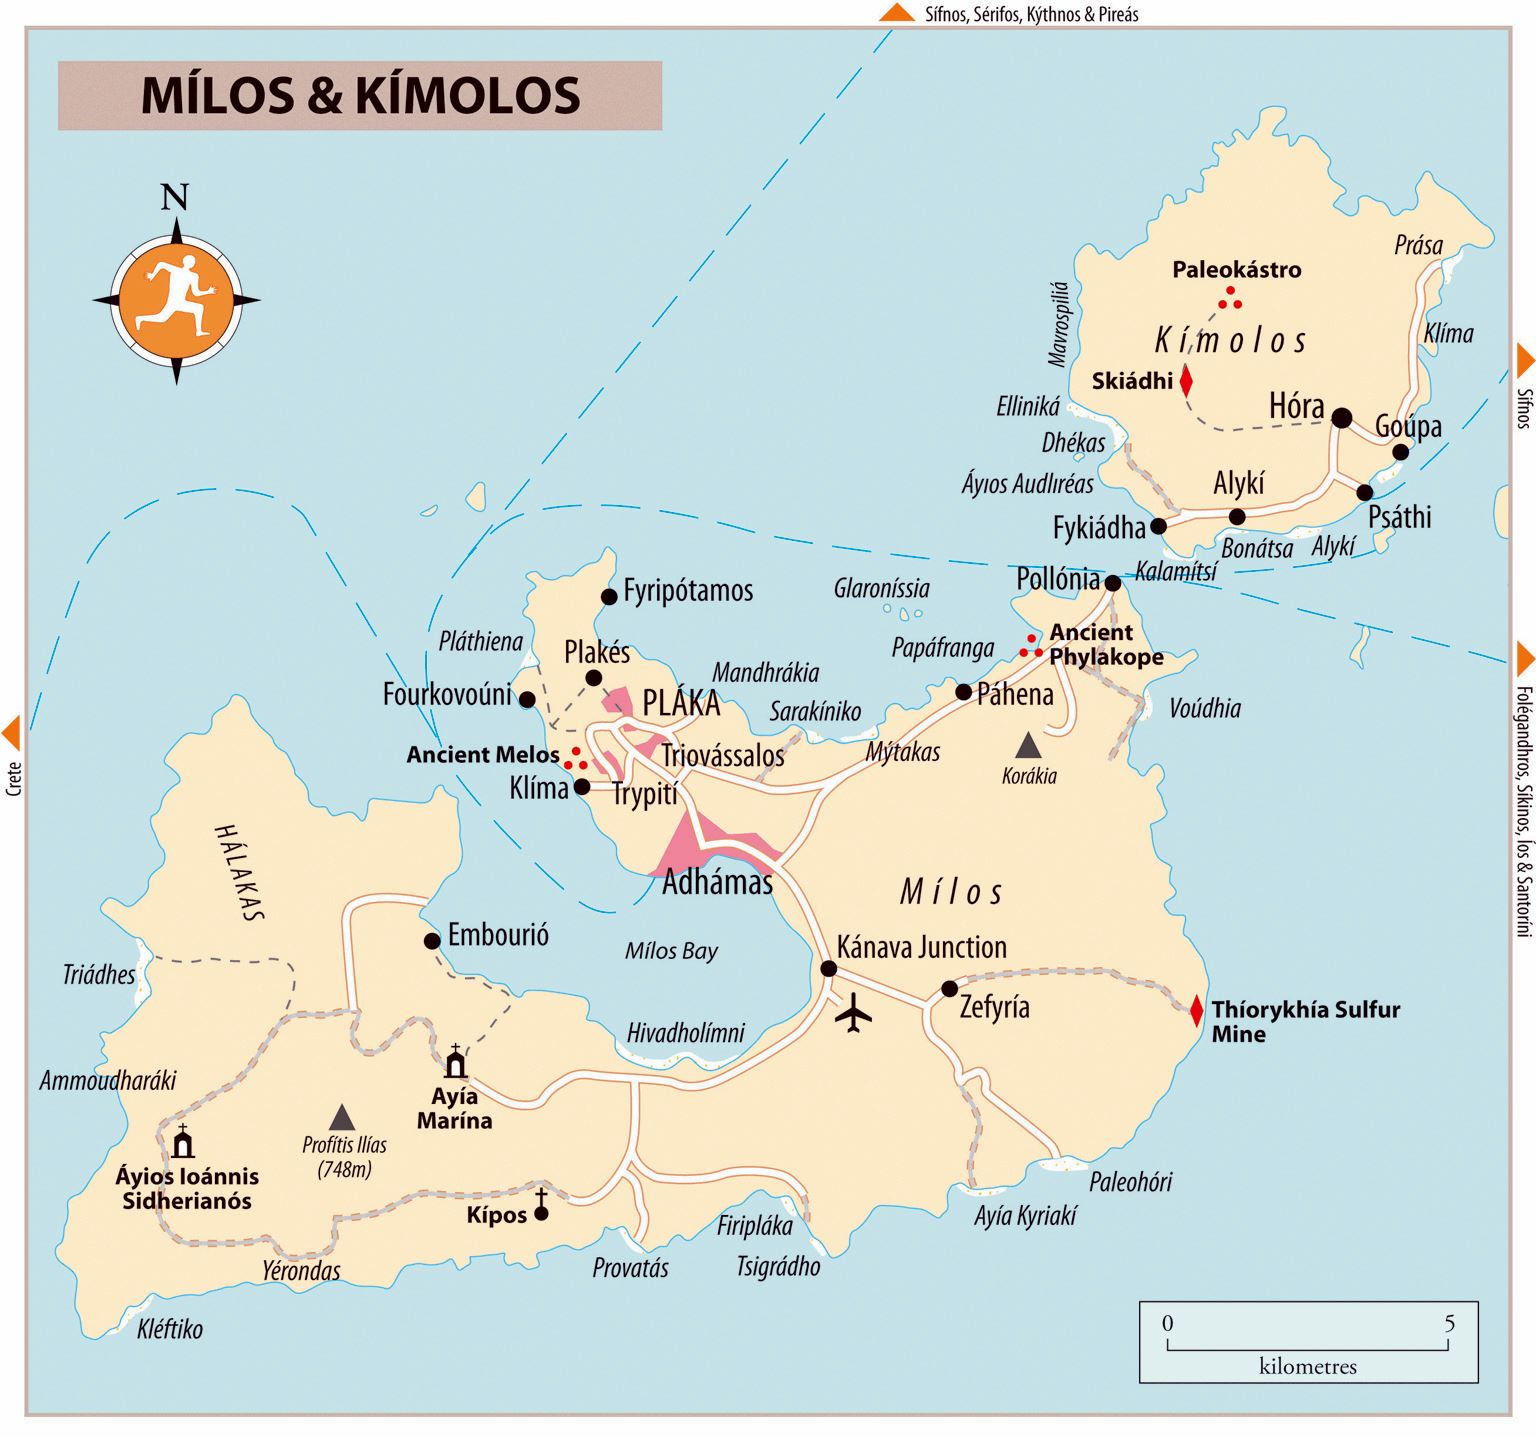 Large Milos Island Maps for Free Download and Print | High